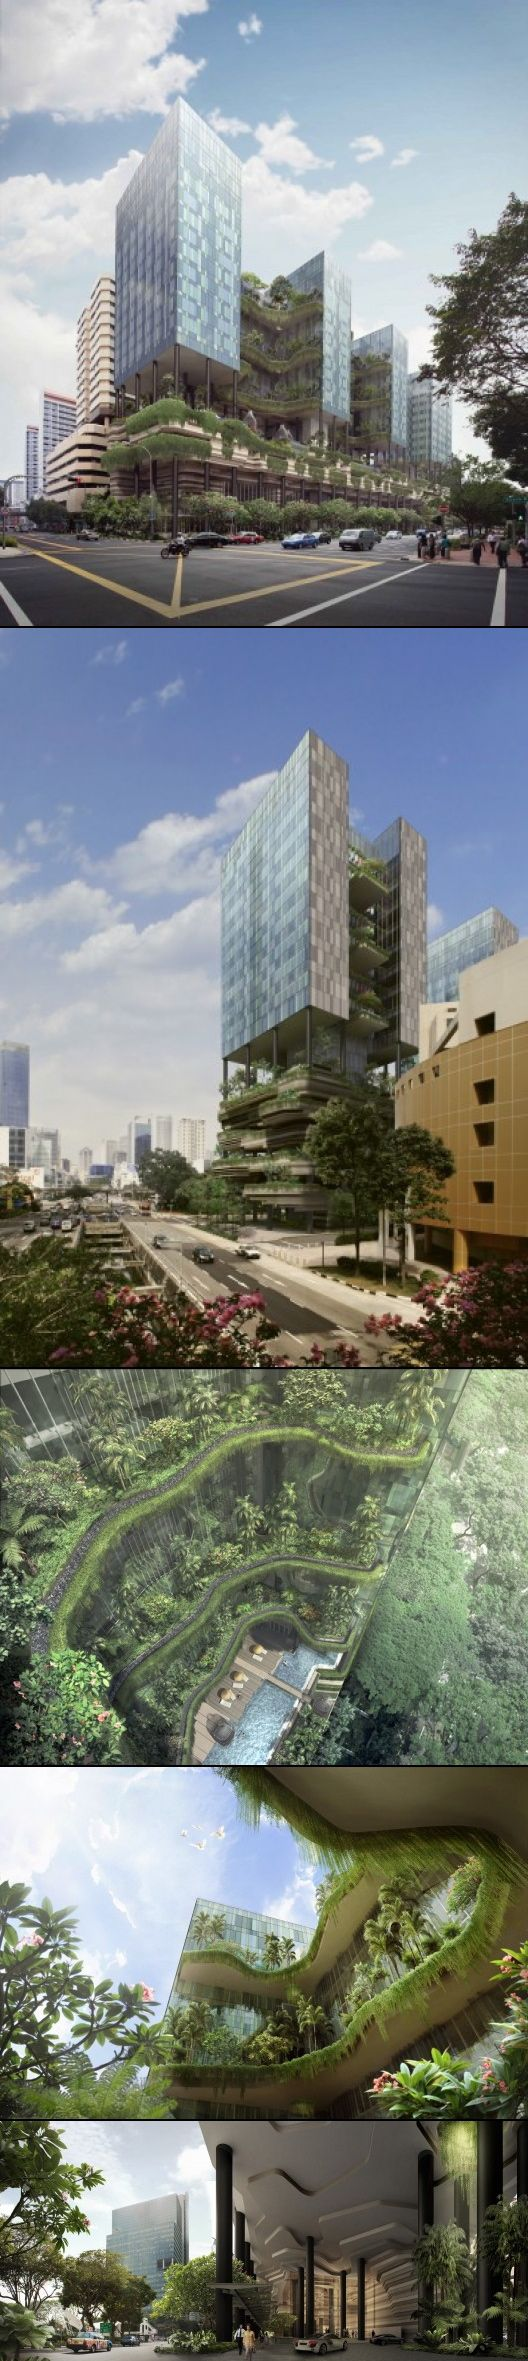 PARKROYAL in Singapore - A total of 15,000m2 of skygardens, reflecting pools, waterfalls, planter terraces & green walls were designed; this is double the site area or equivalent to the footprint of the adjacent Hong Lim Park.